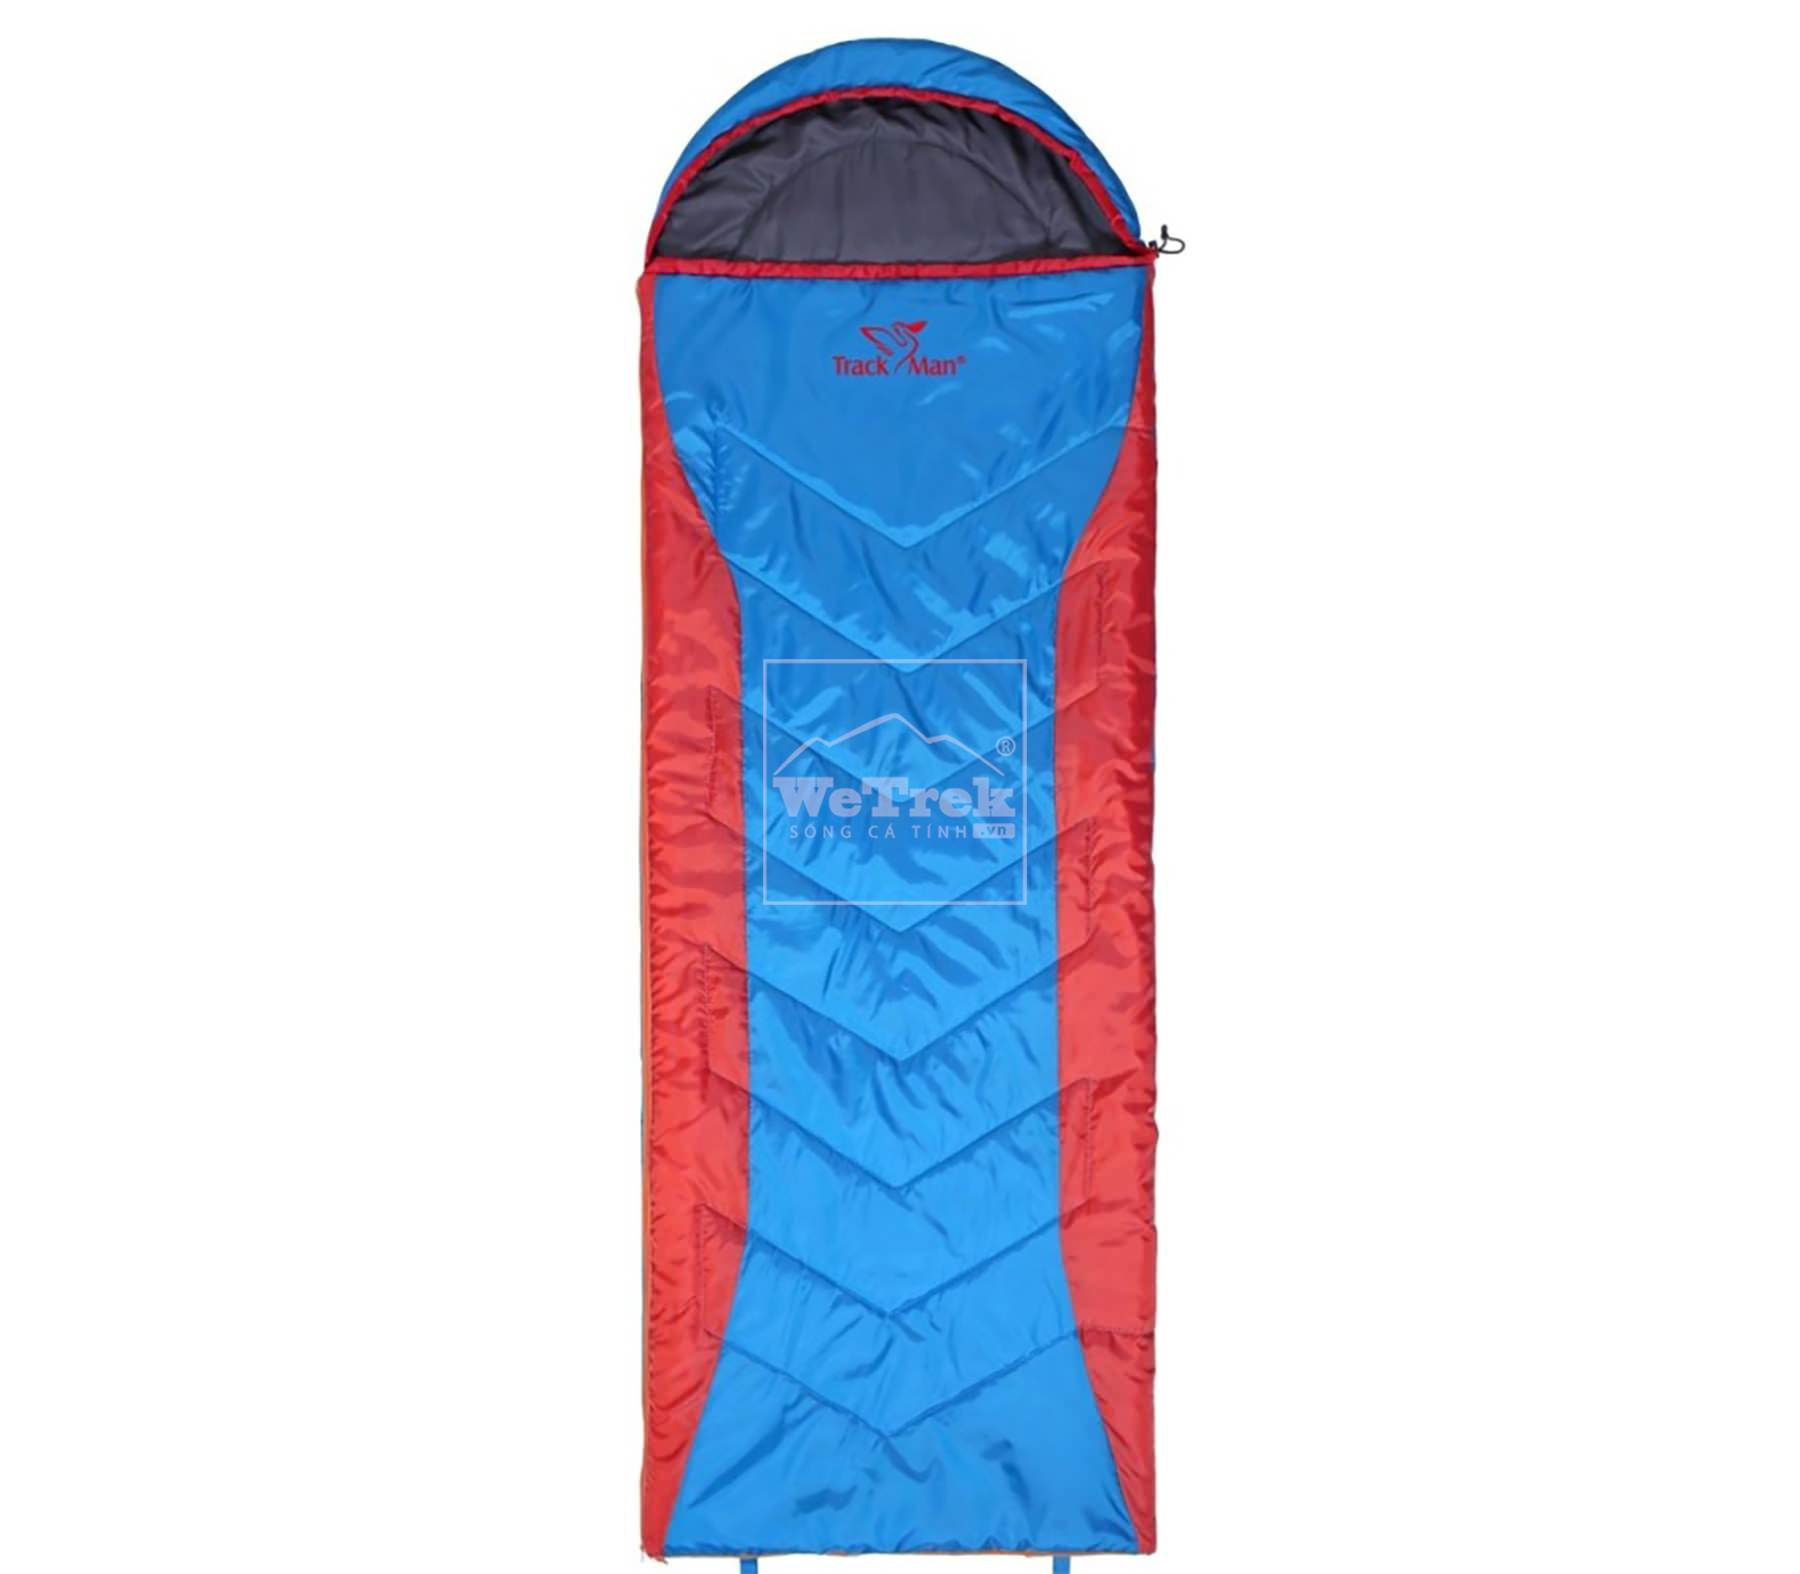 Túi ngủ Track Man Sleeping Bag TM3211 100g - 7900